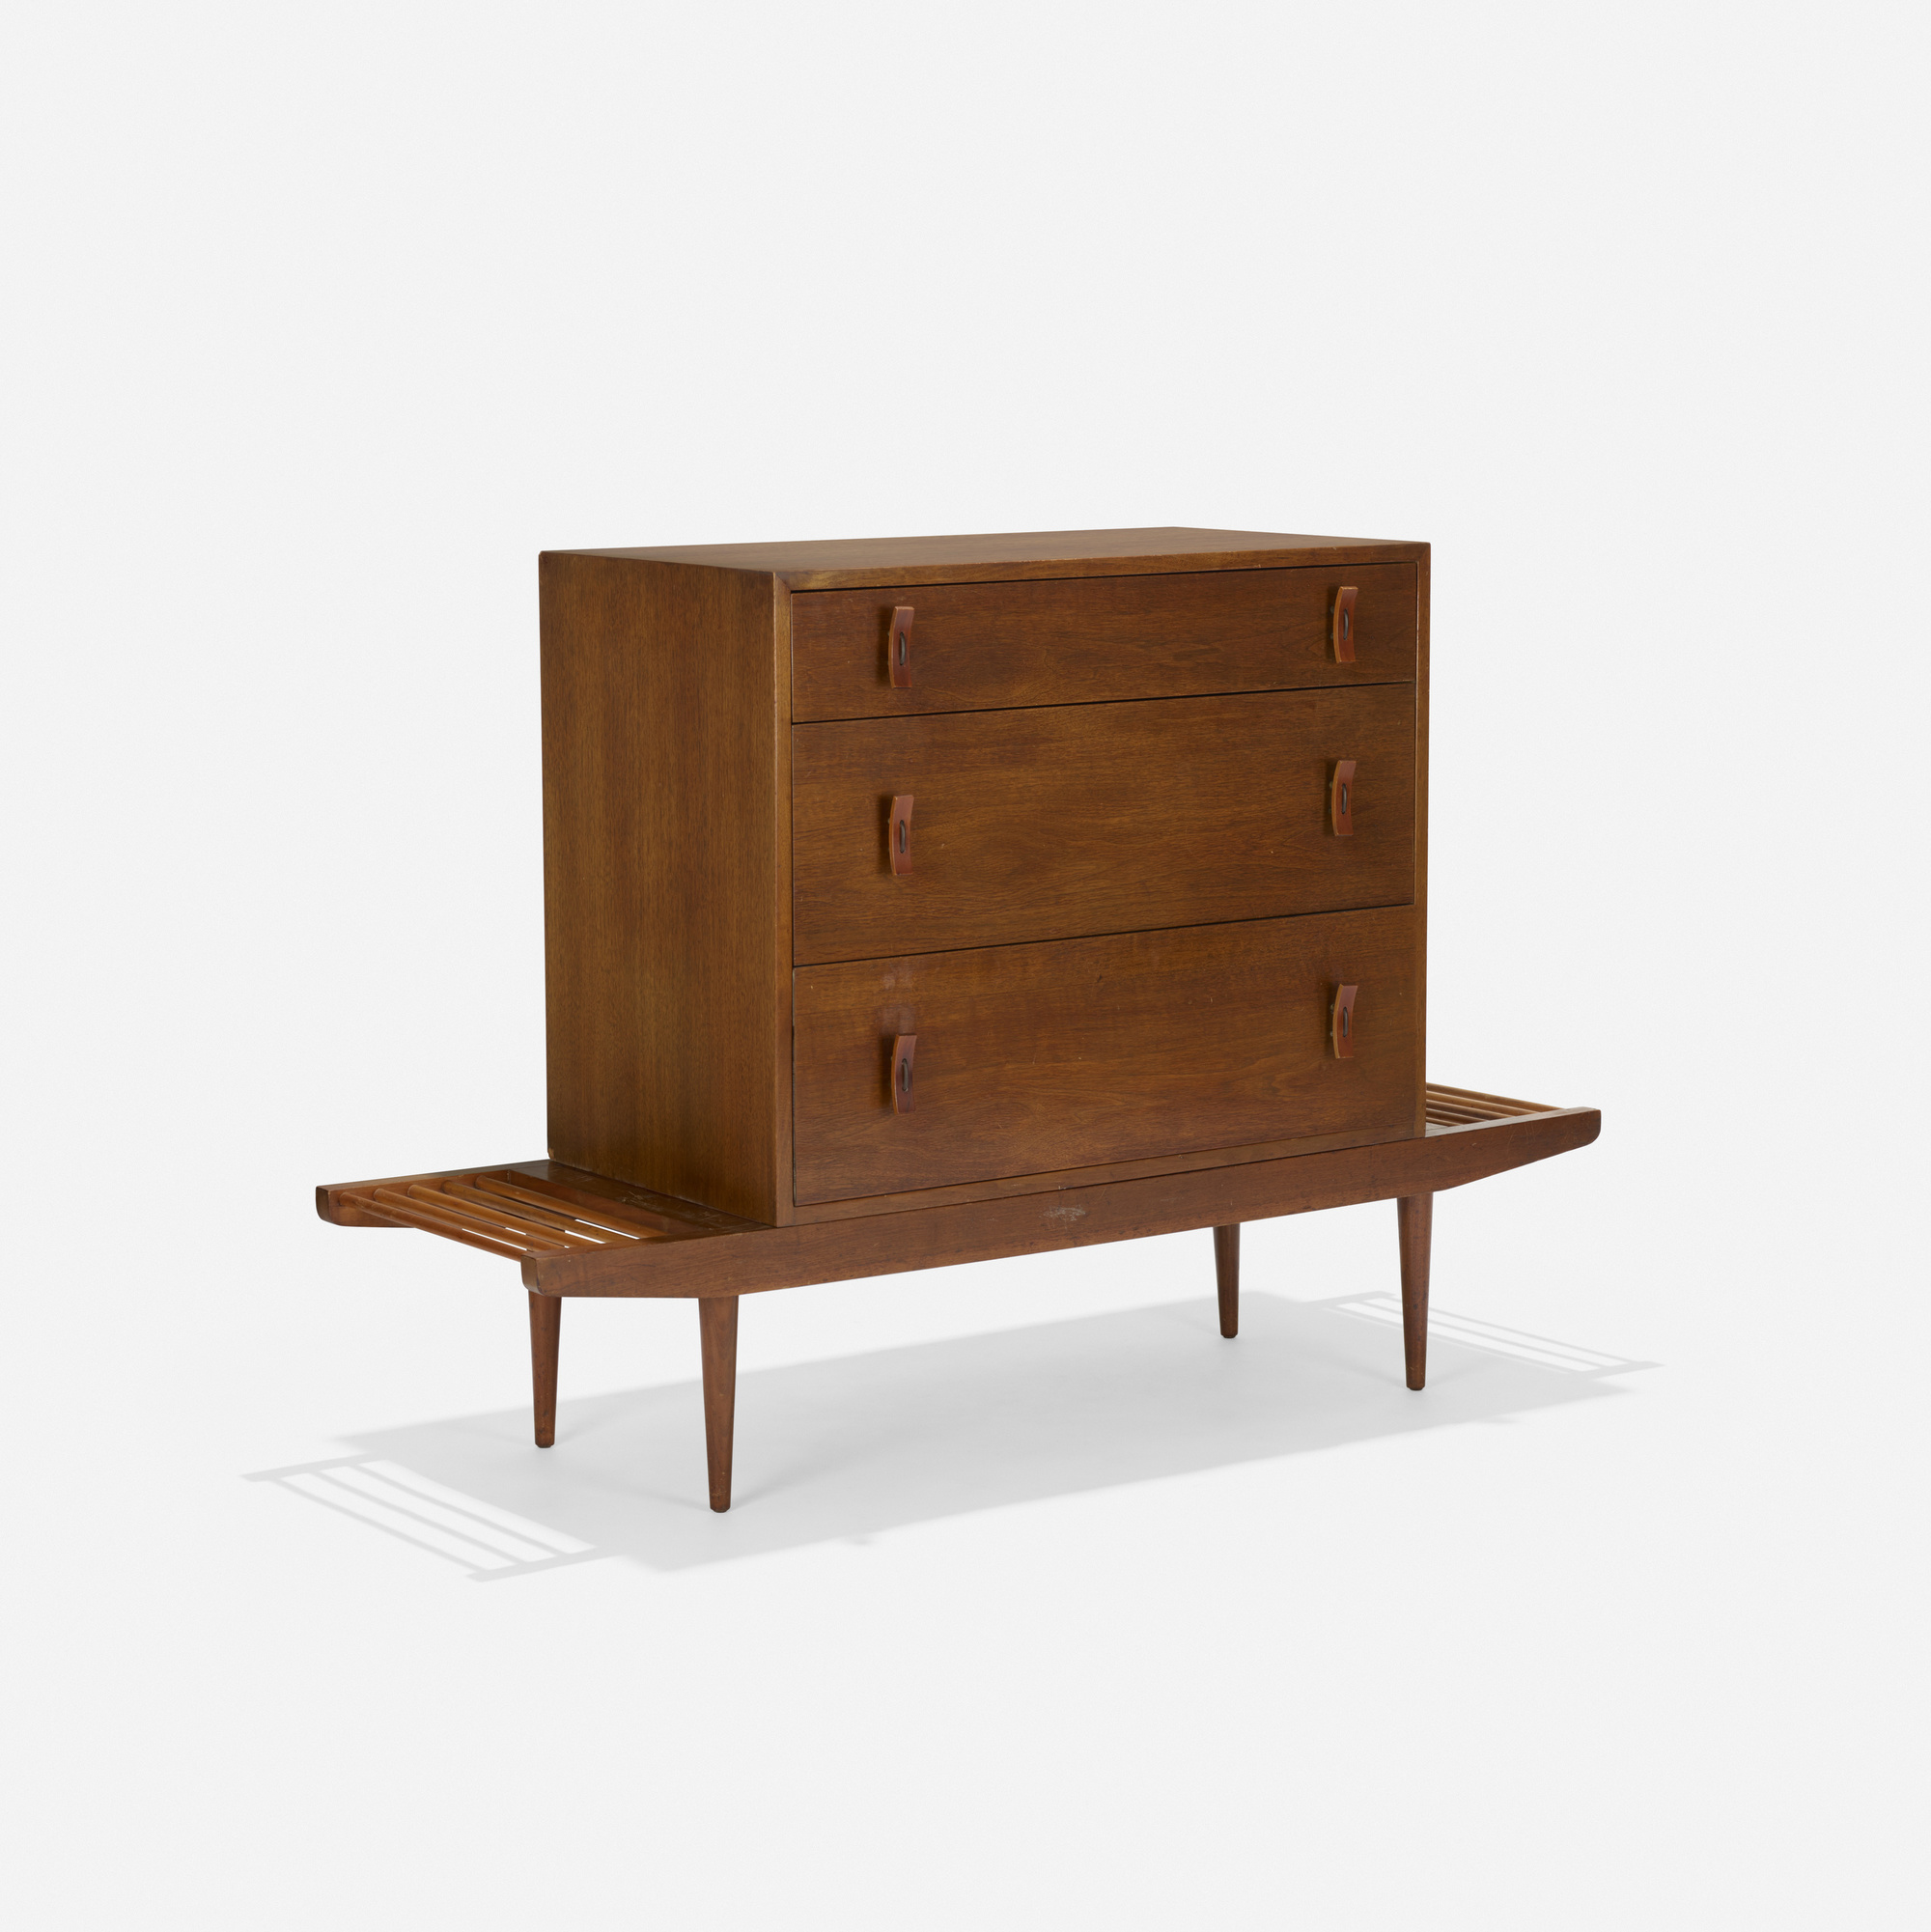 143: Milo Baughman and Stanley Young / bench with cabinet (1 of 3)